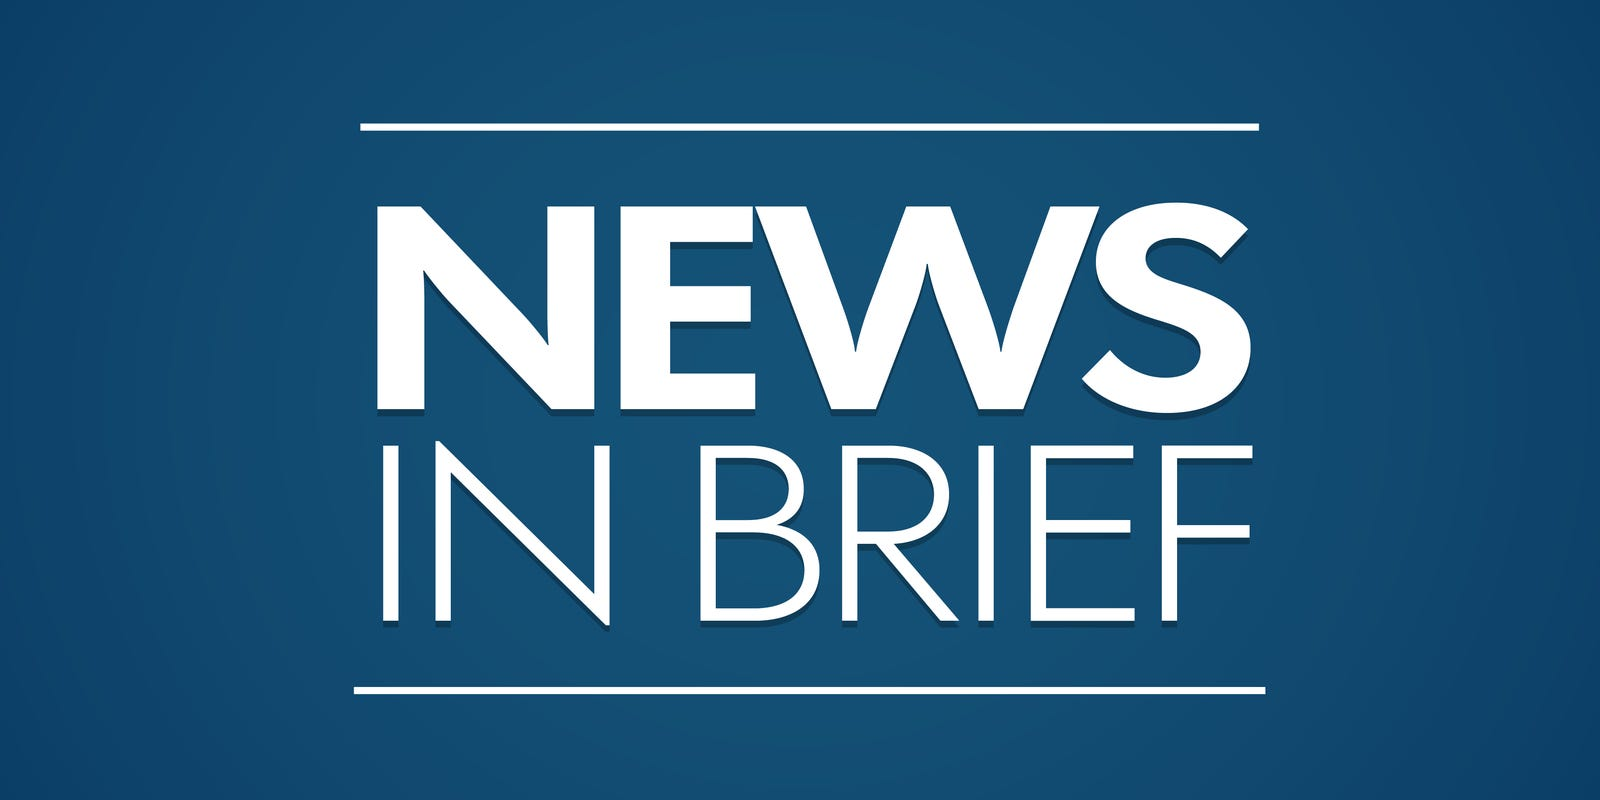 Alliance Area News In Brief For Nov 12 We offer patients convenient access to an elite team of experienced urologists, along with. alliance area news in brief for nov 12